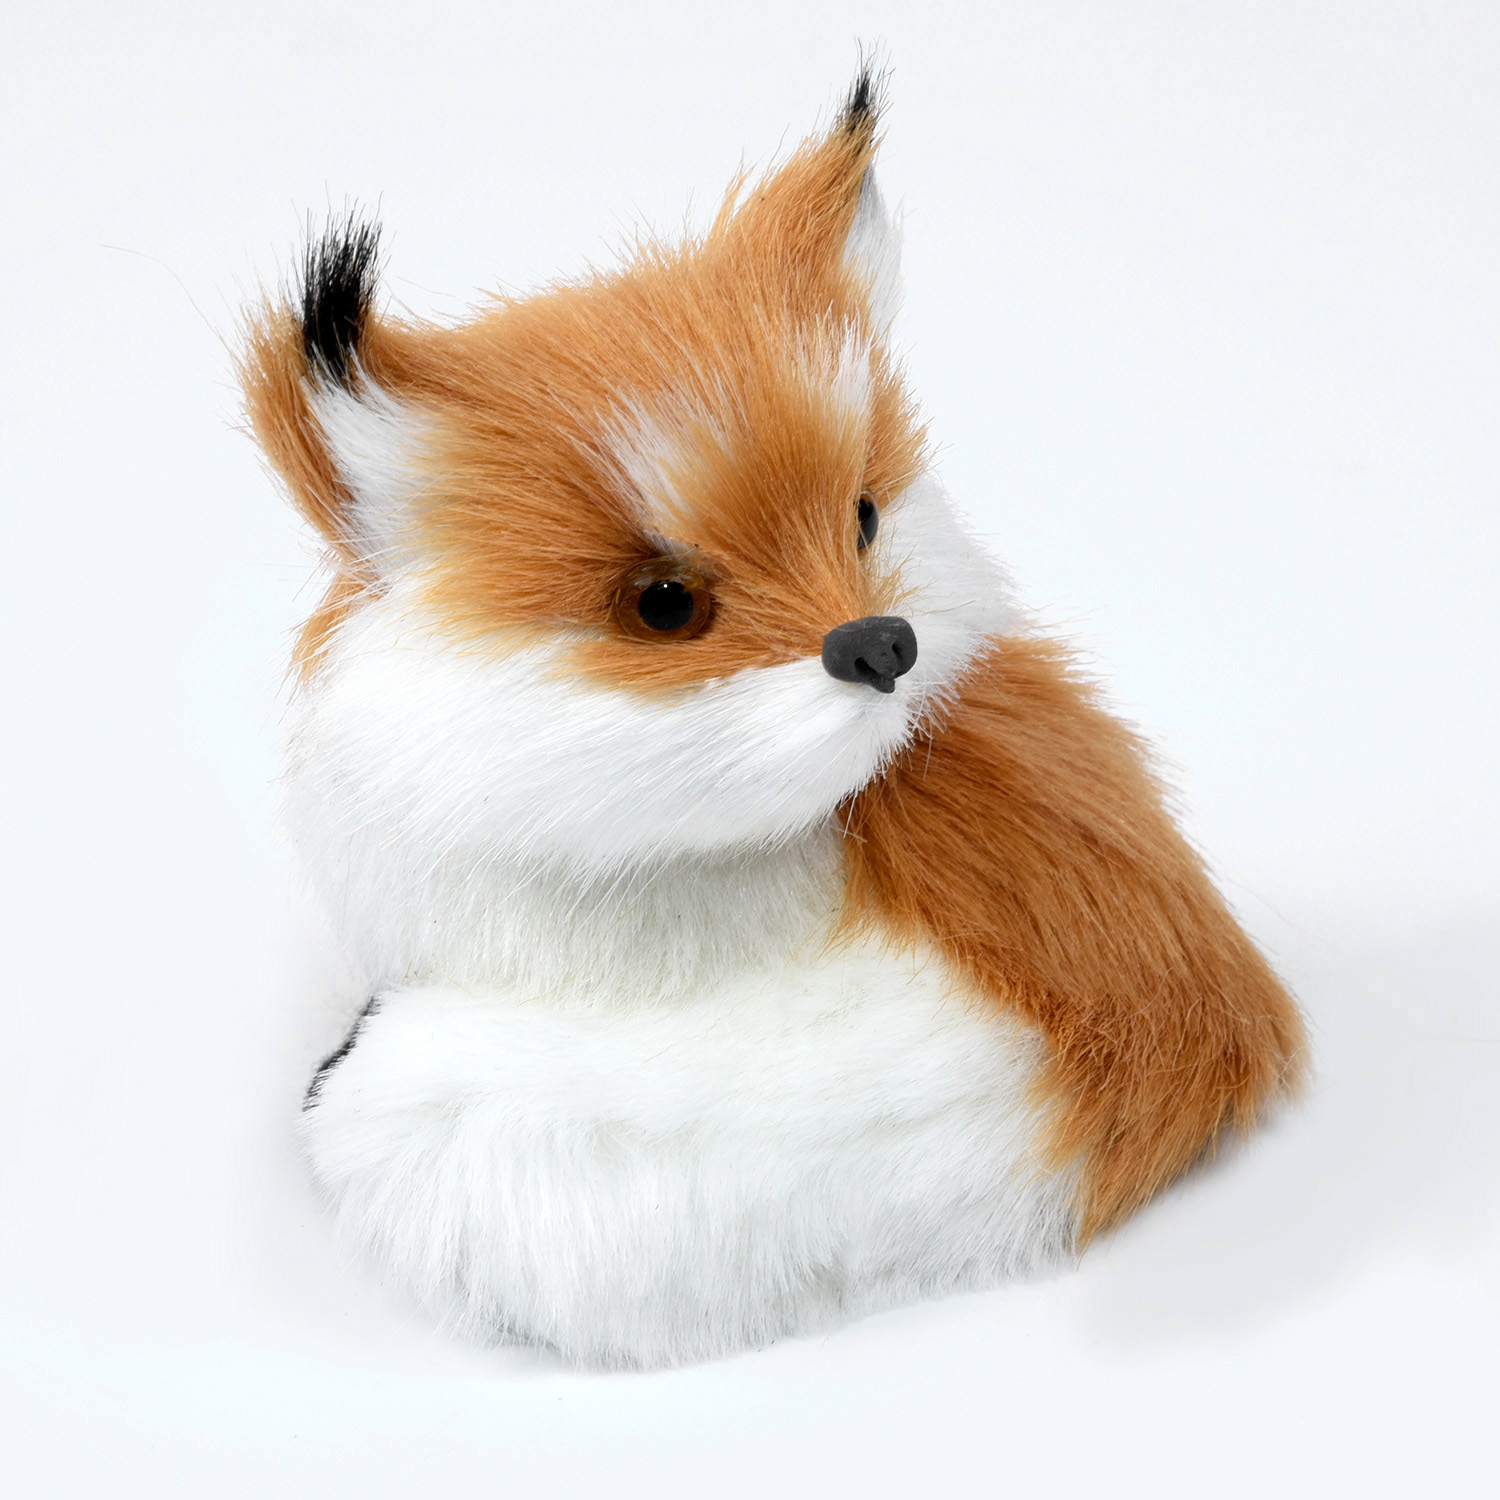 Car Plush Interior Toy Decorative Doll Decoration Christmas 9 7 8cm Model Little Fox Nice 2018 Newest in Stuffed Plush Animals from Toys Hobbies